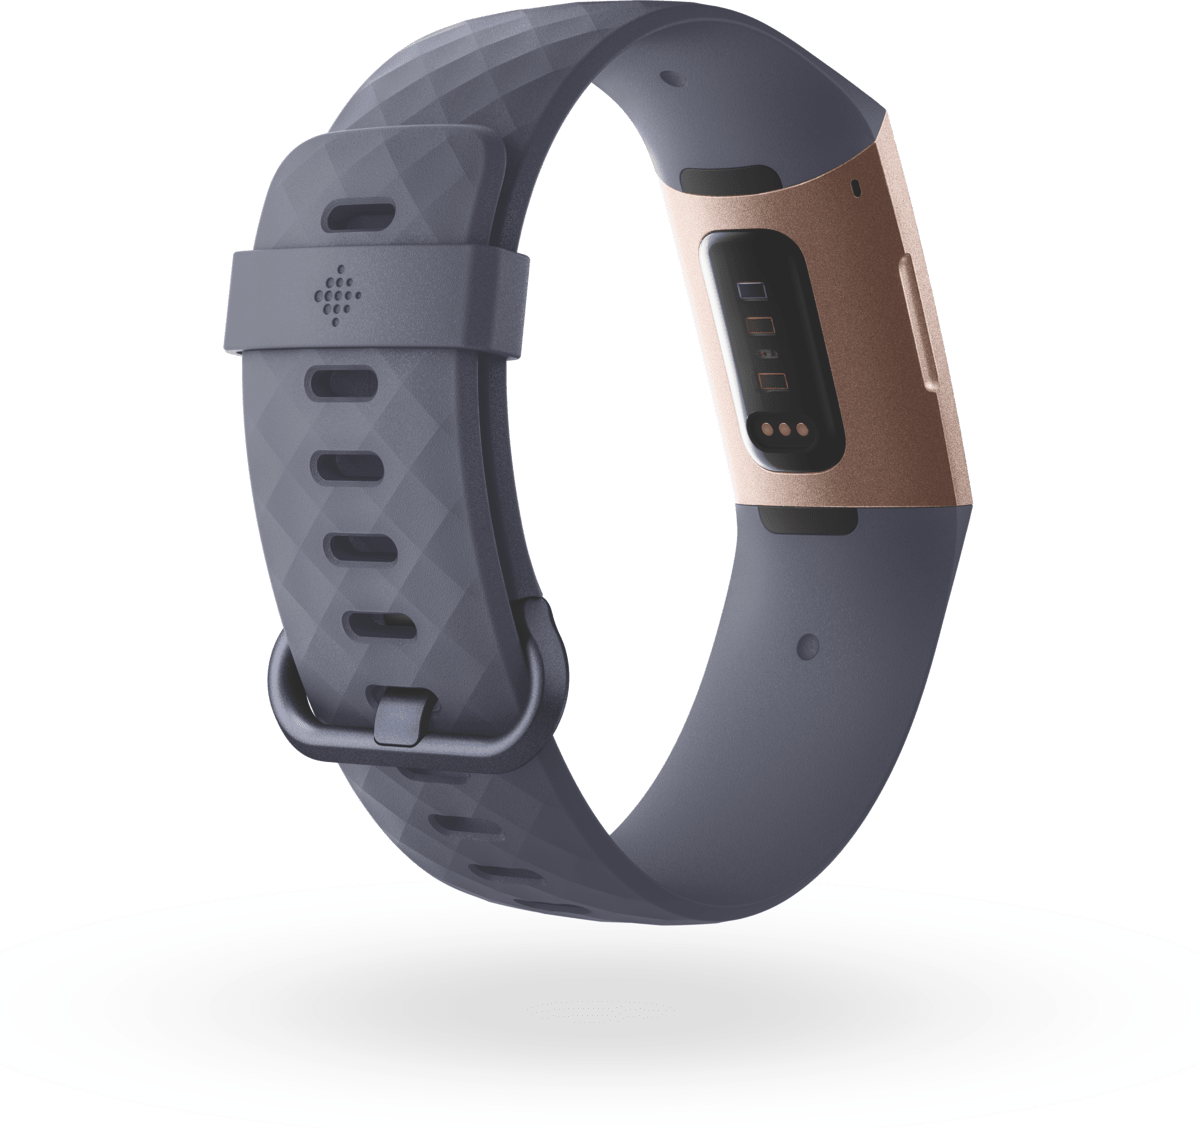 Rose Gold & Blue Grey Fitbit Charge 3.2